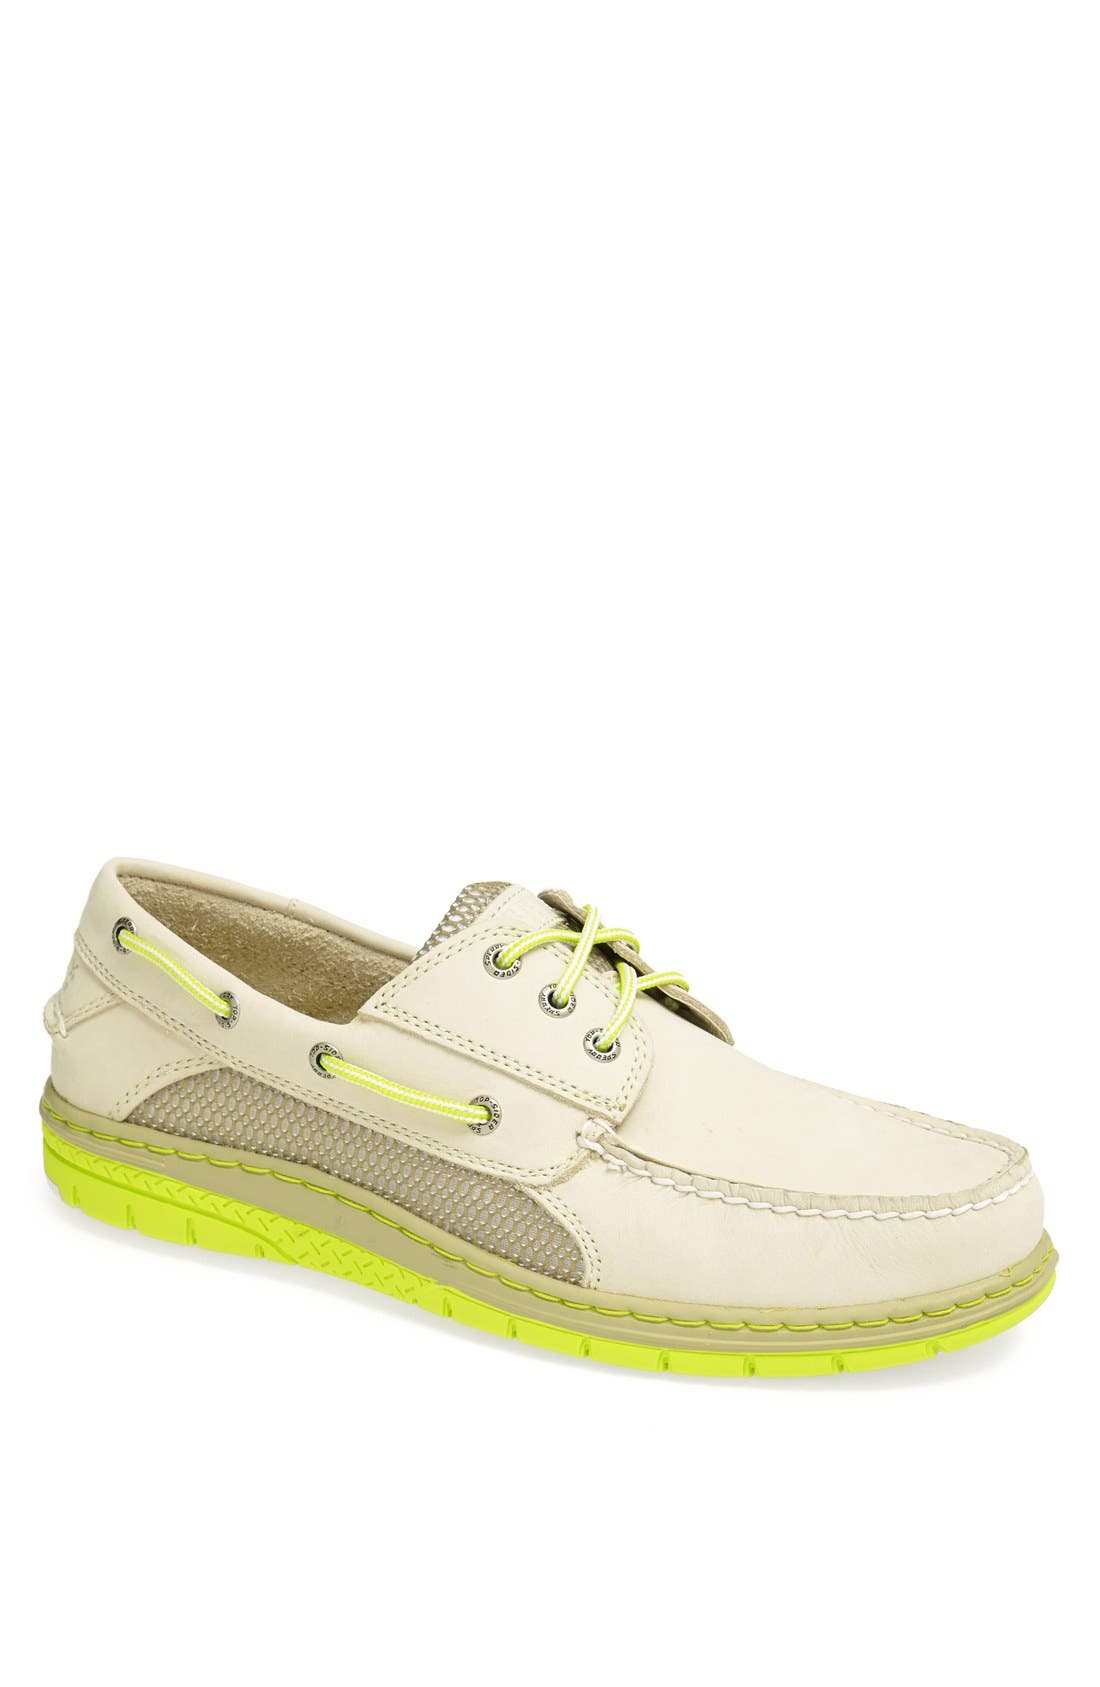 'Billfish Ultralite' Boat Shoe,                             Main thumbnail 8, color,